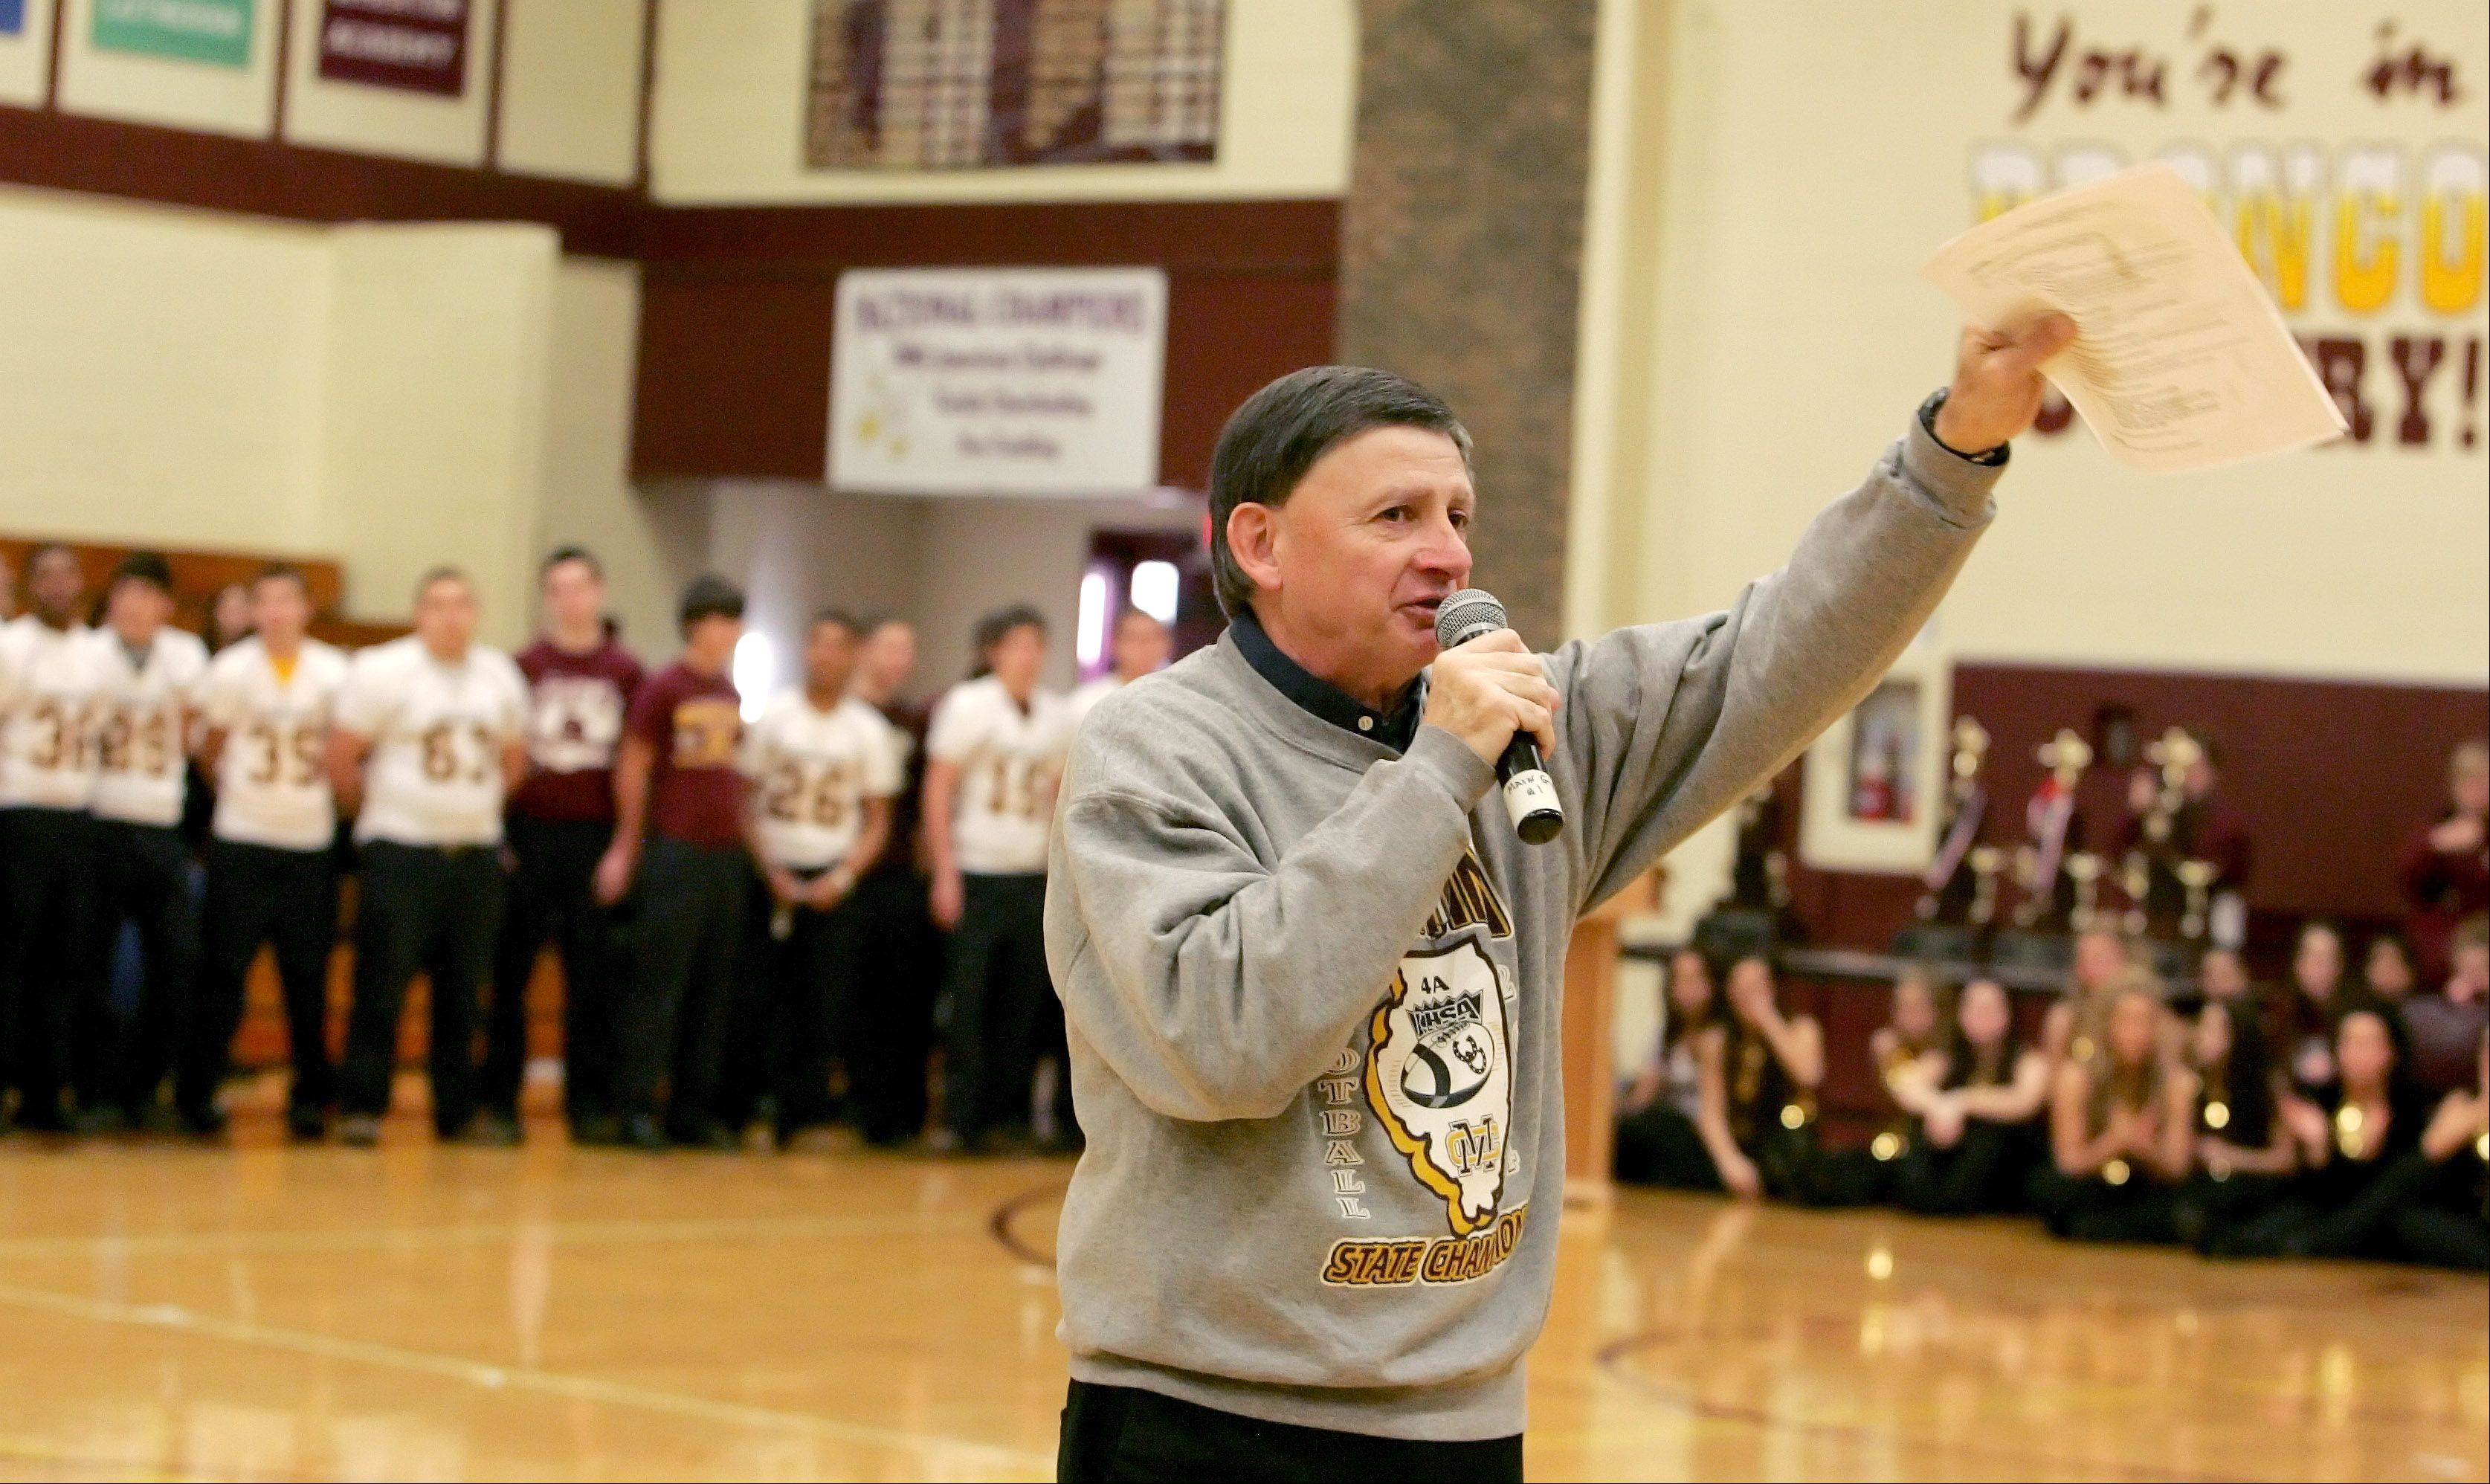 Montini football coach Chris Andriano speaks about the team that won the school's third consecutive Class 5A state championship.